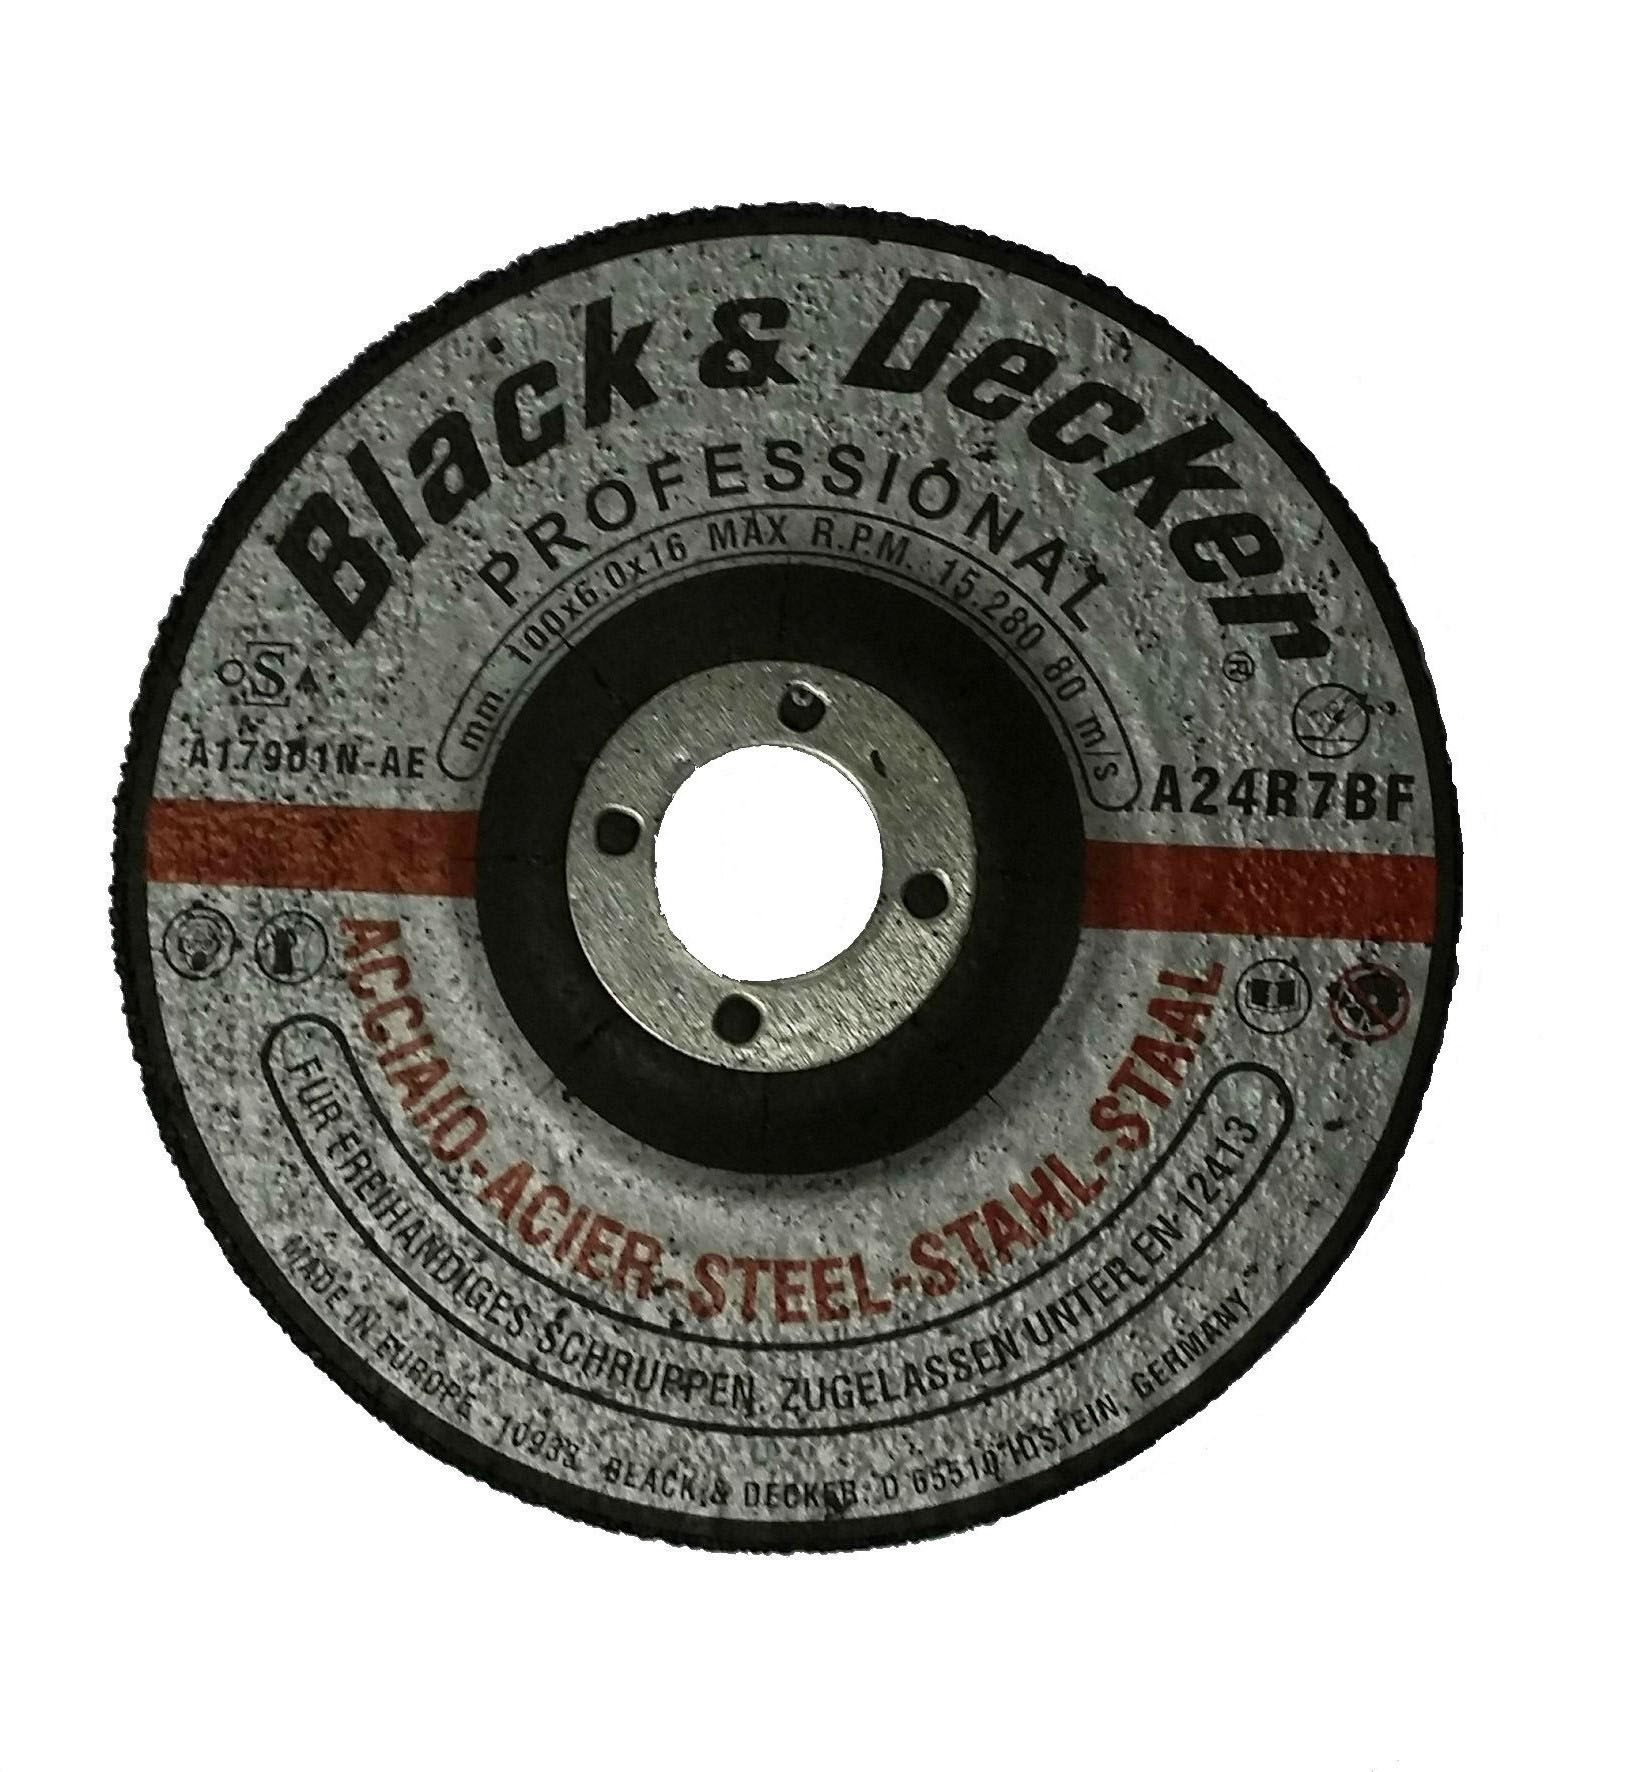 Black & Decker A17921N-AE - 4.5-inch Metal Grinding Disc